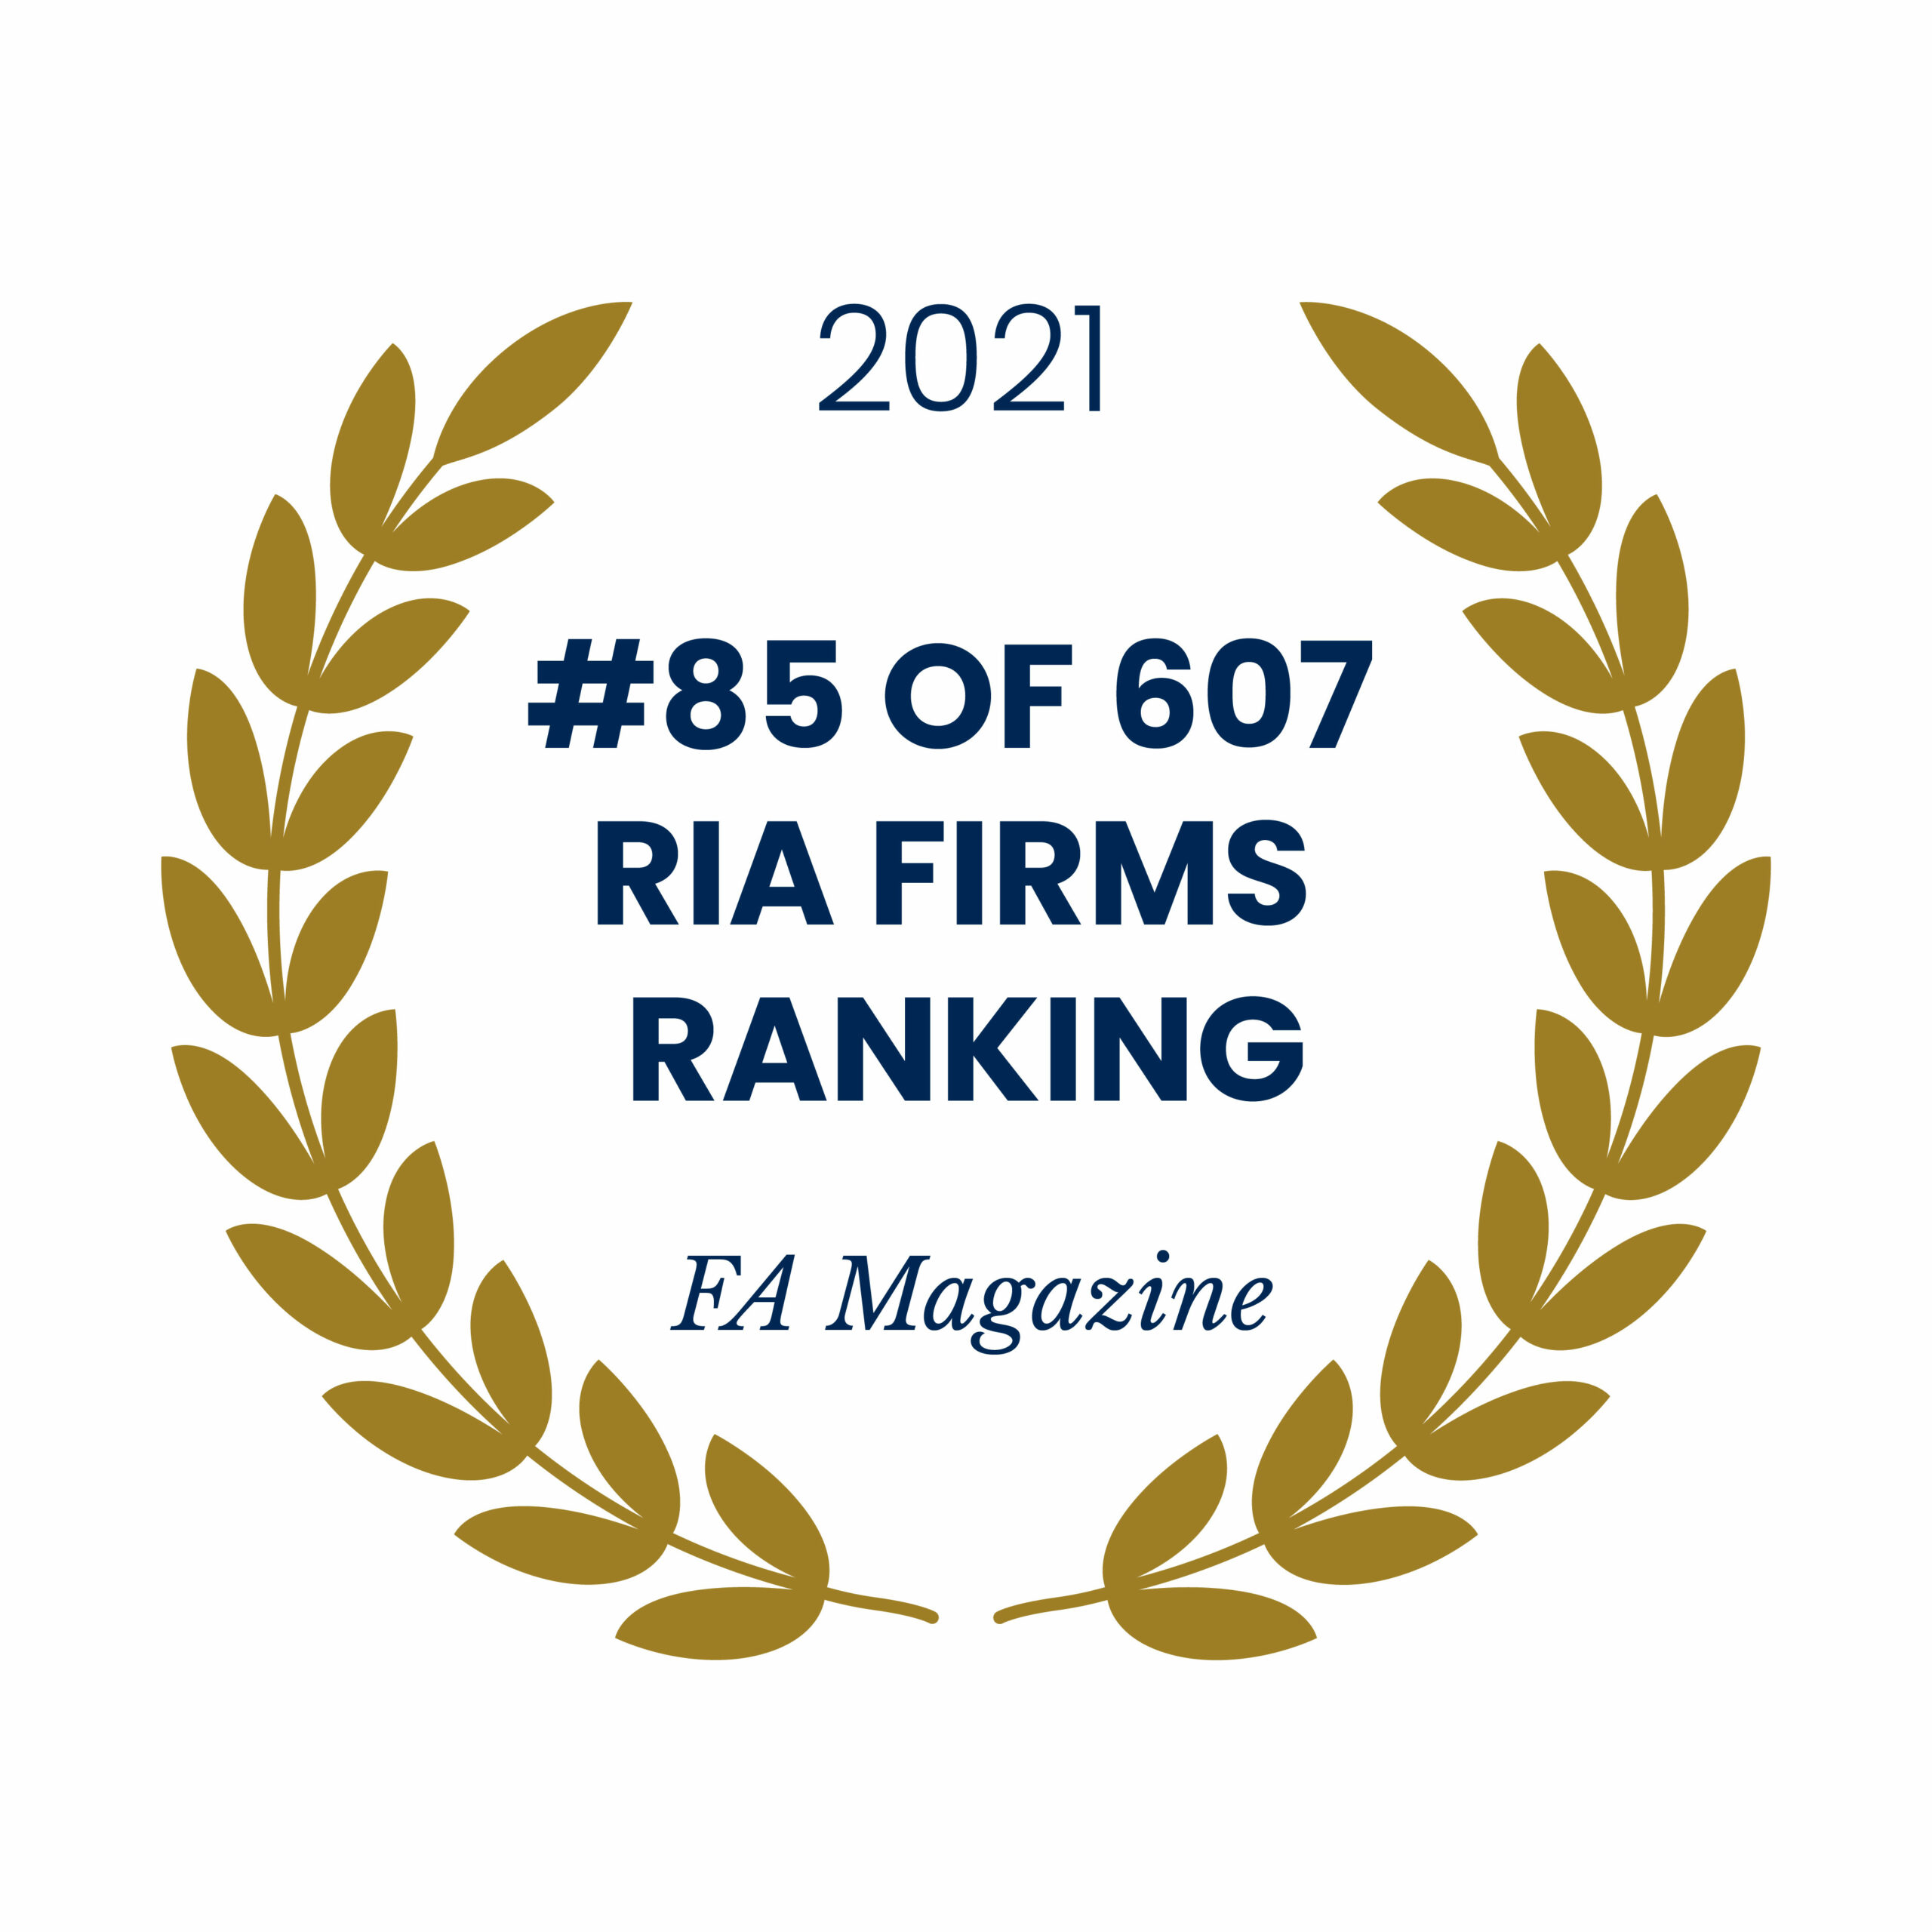 Award emblem for ranking #85 of 607 RIA Firms ranked by FA Magazine